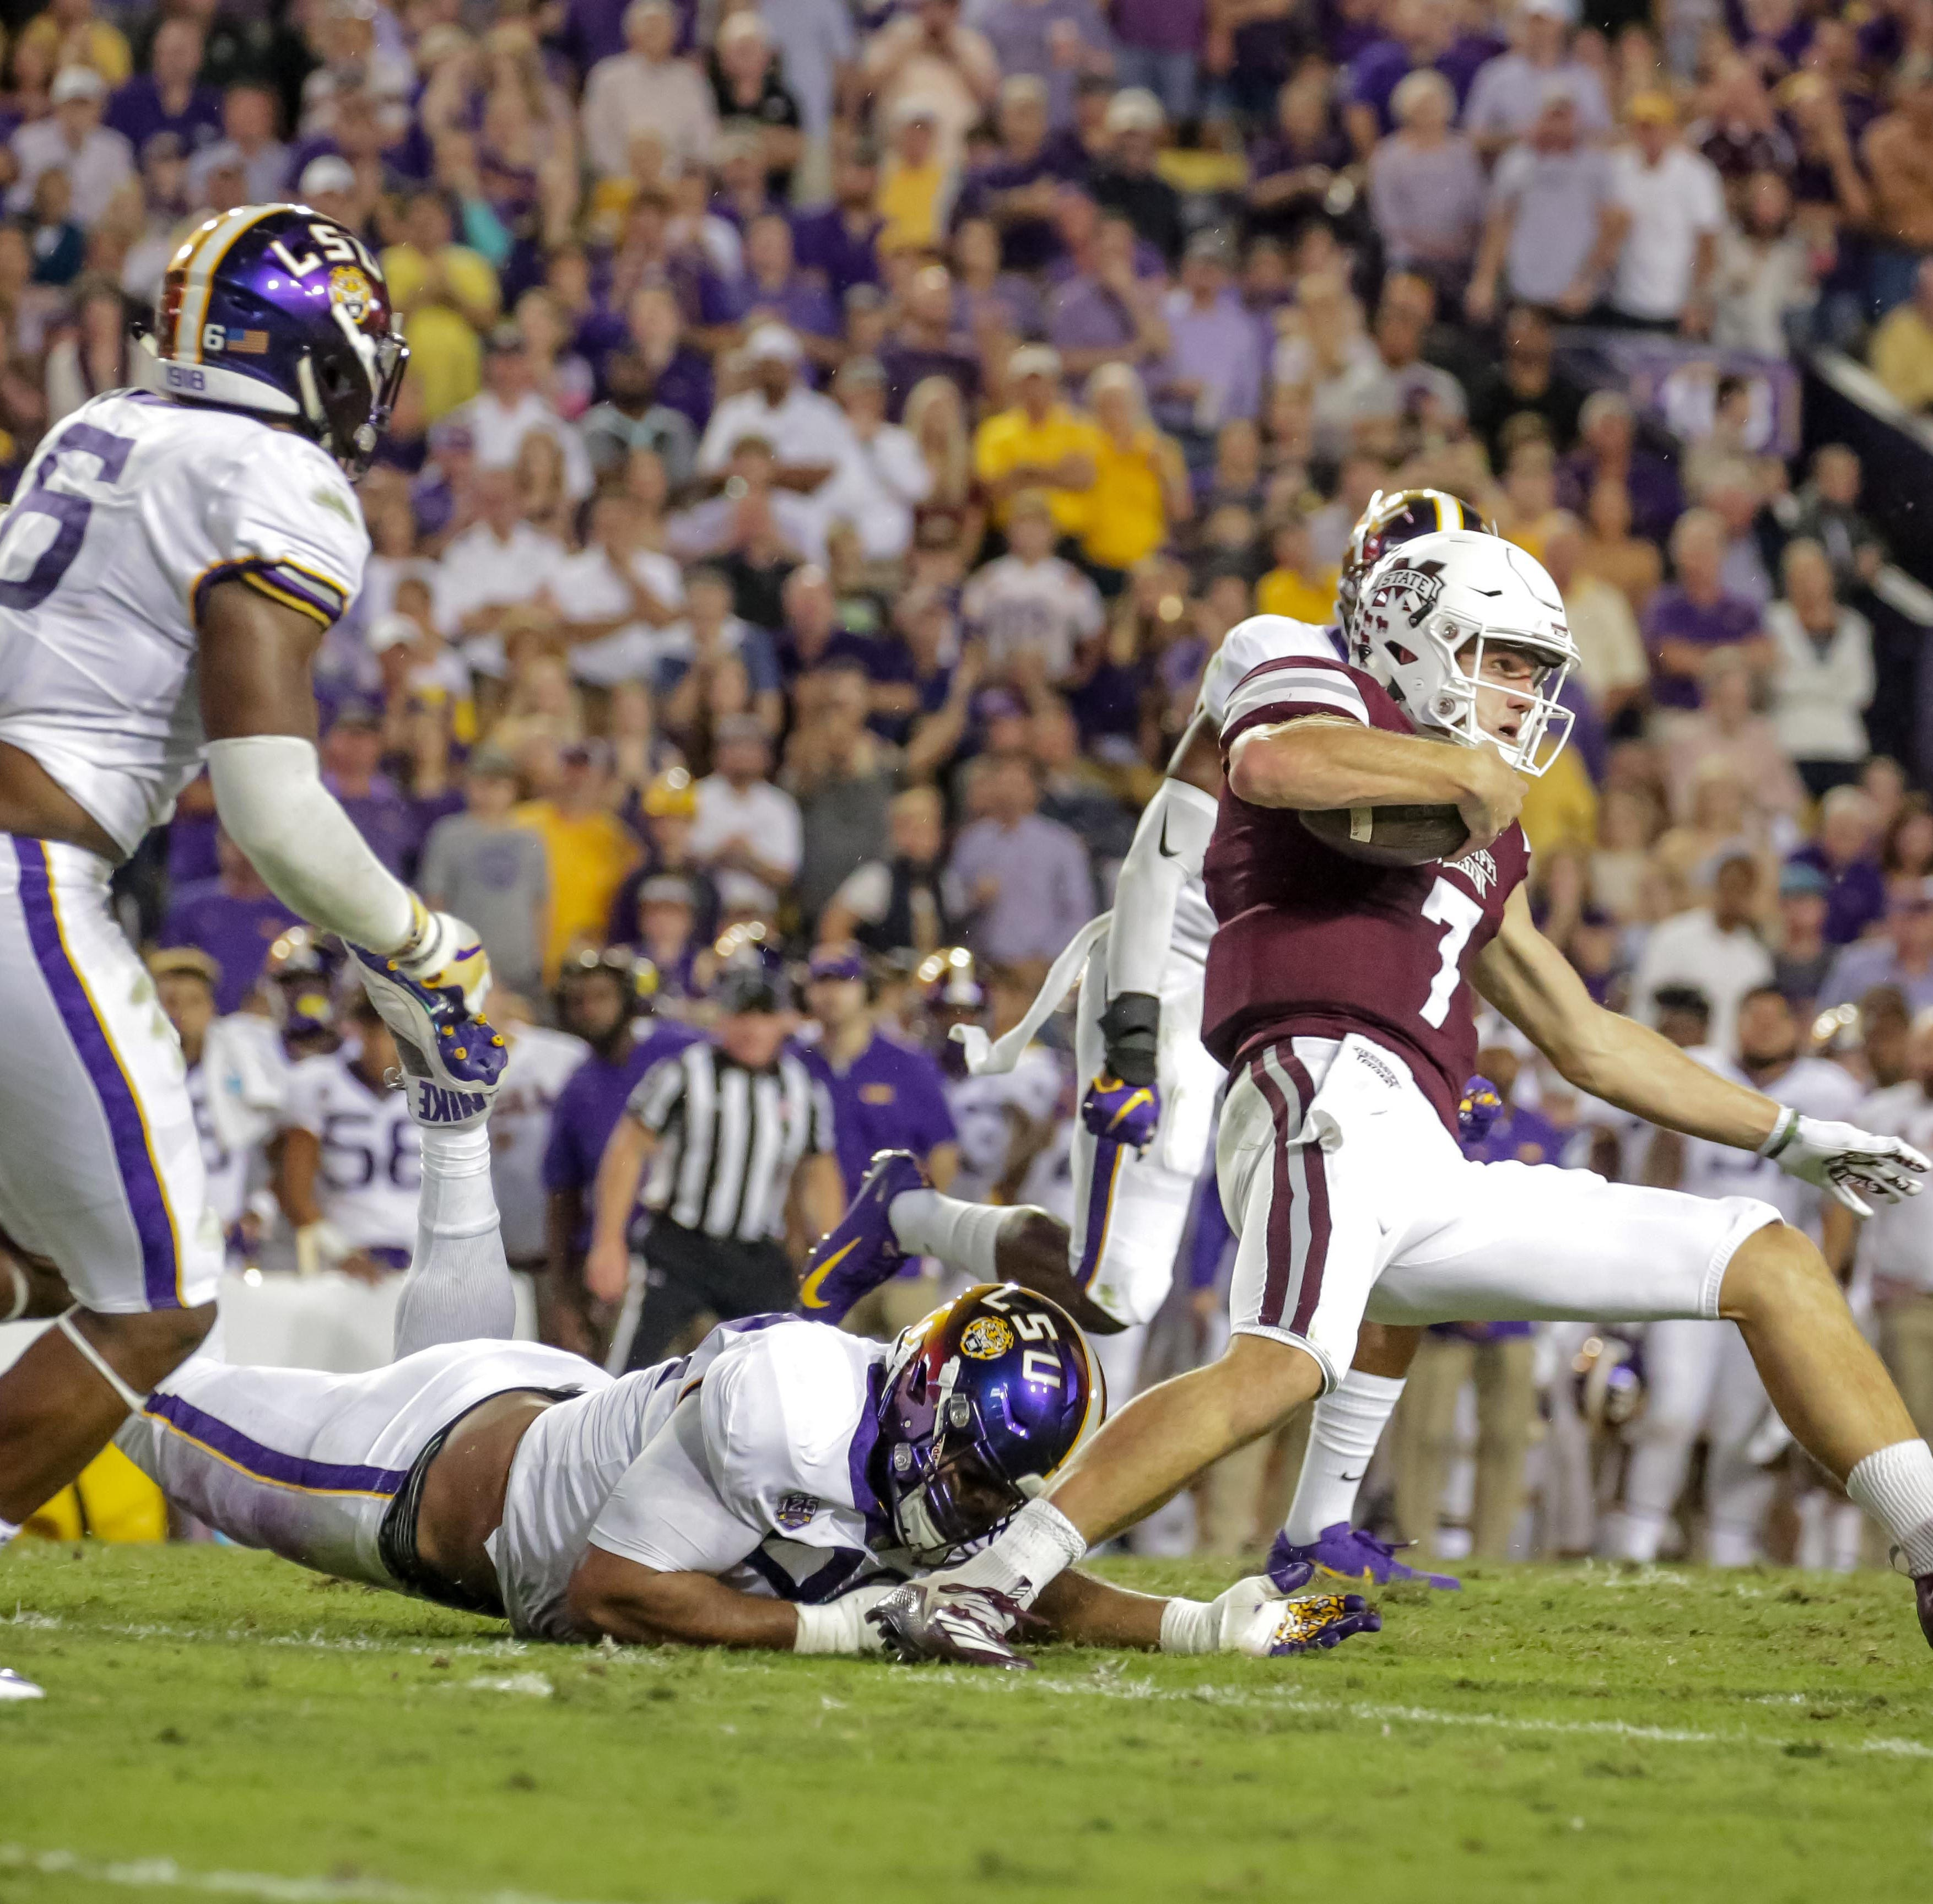 Downed in Death Valley: Mississippi State offense flails in 19-3 loss to No. 5 LSU